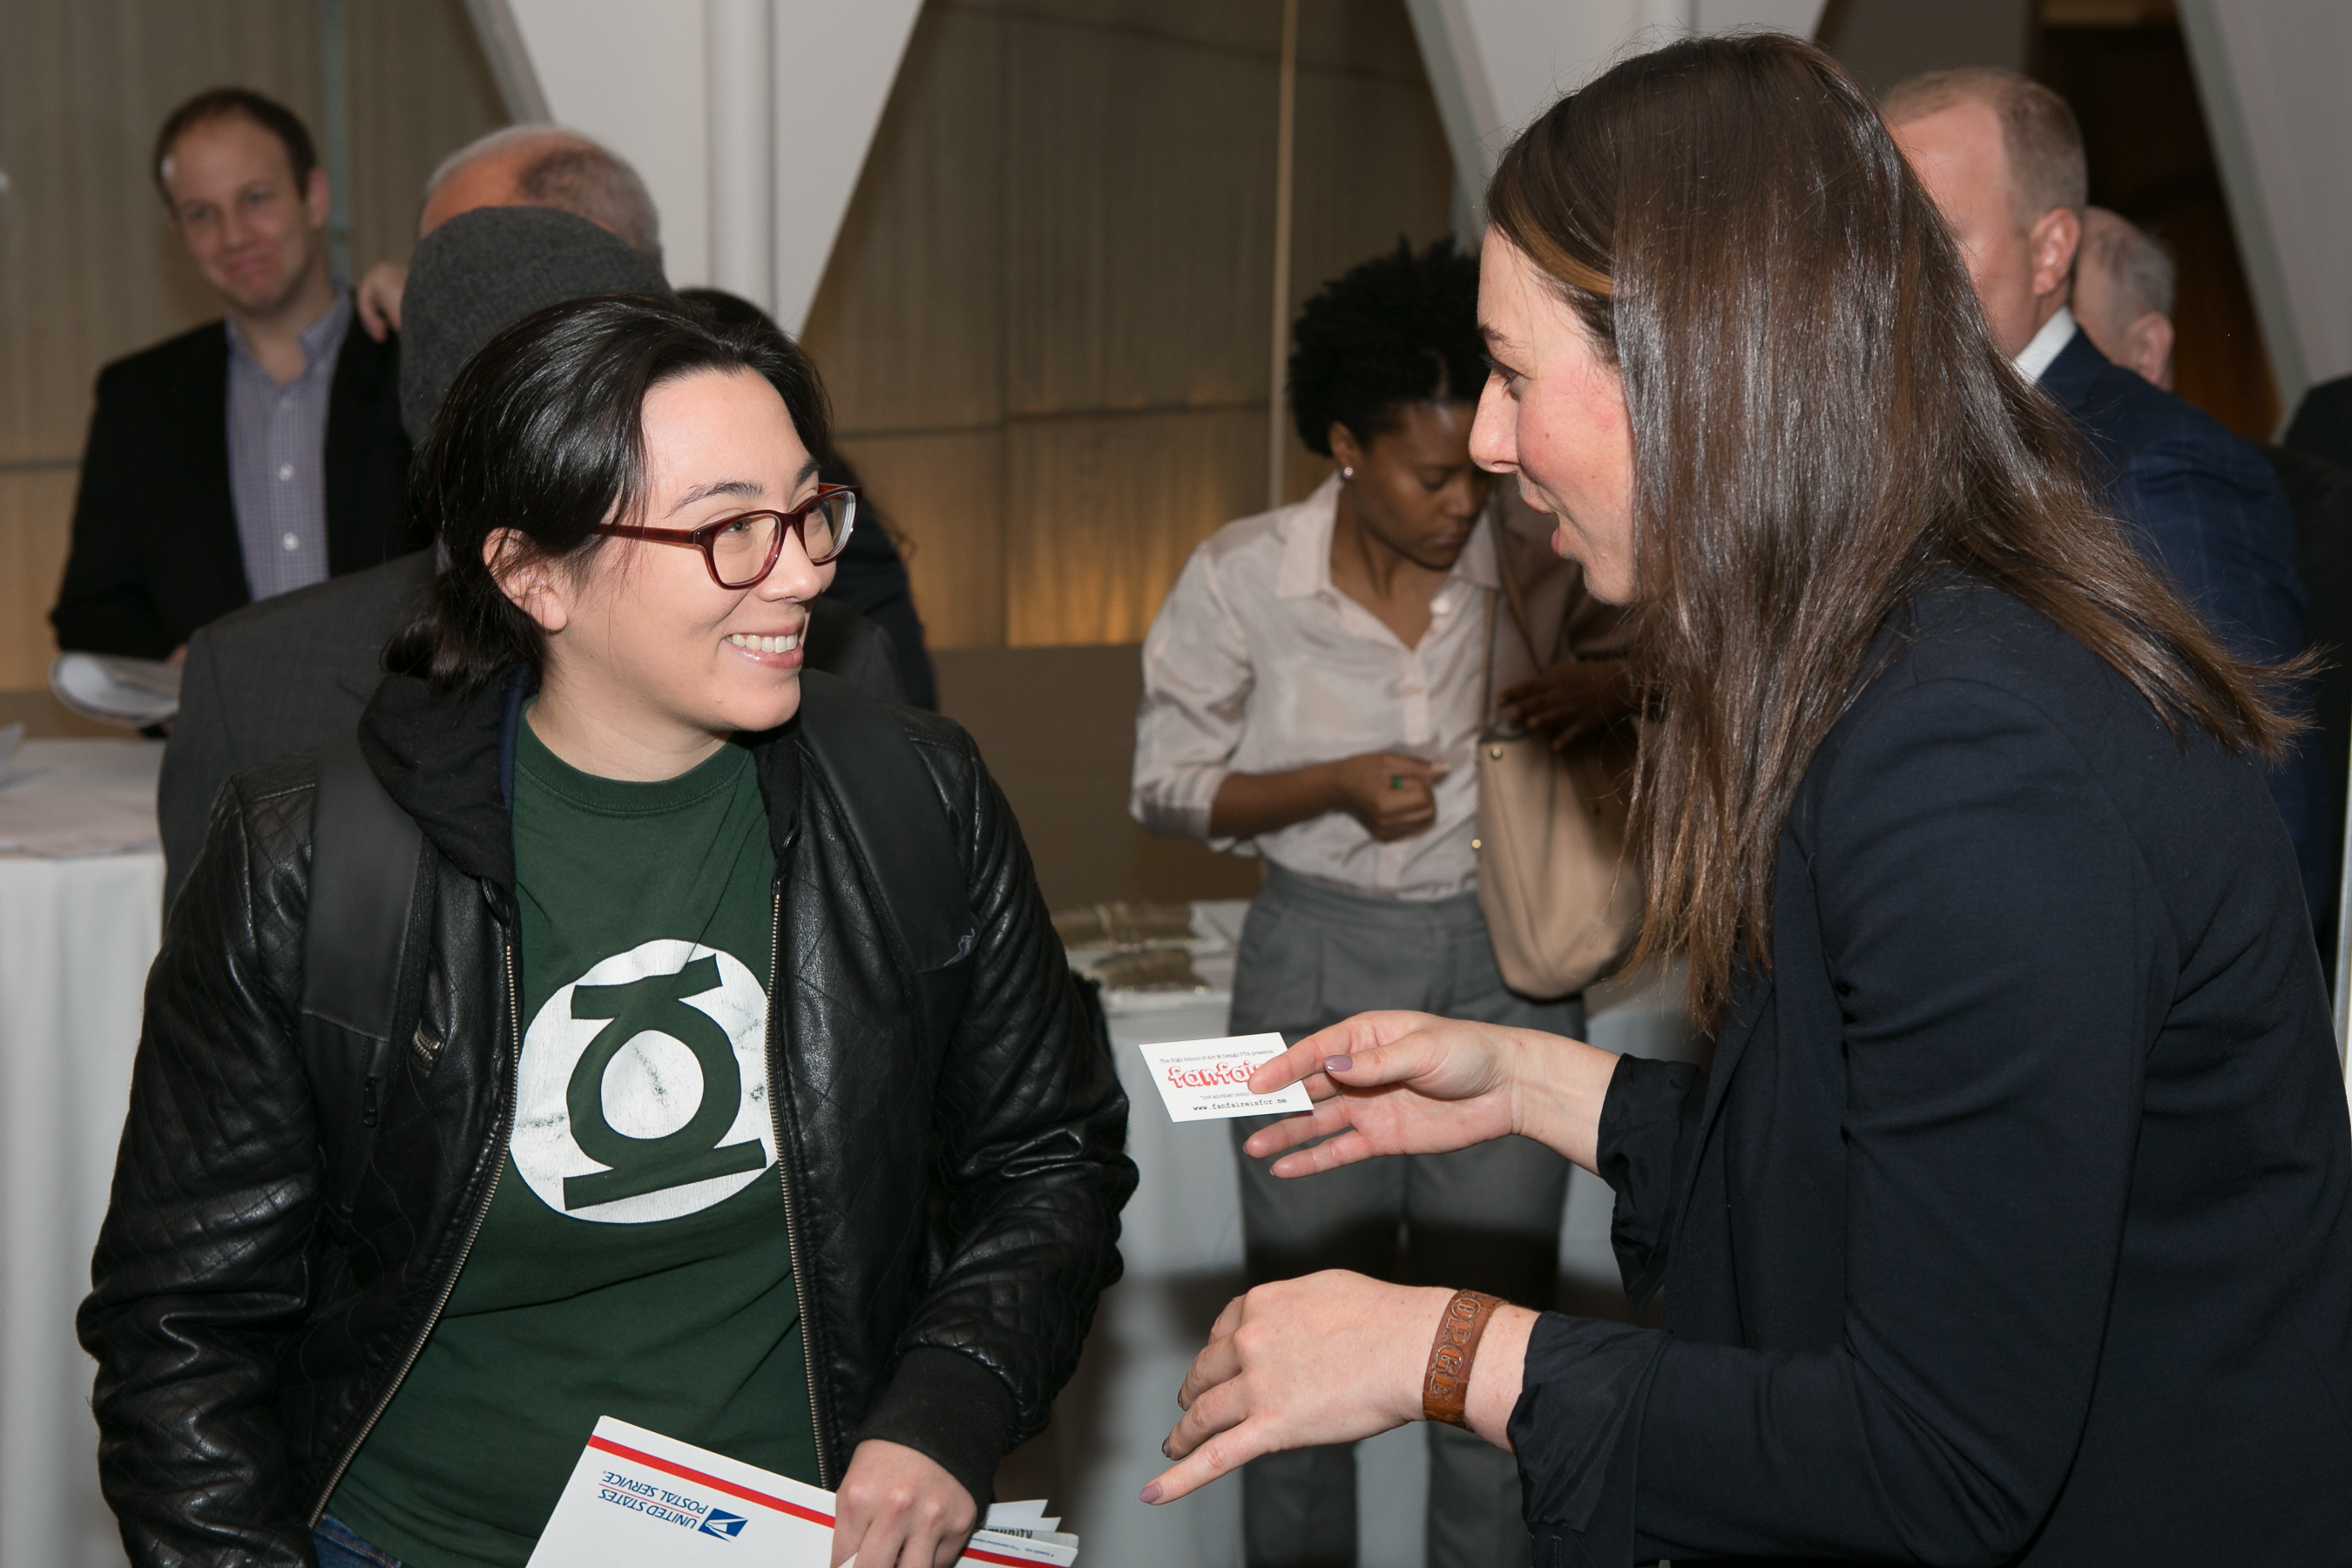 Two people talking at a networking event and exchanging business cards